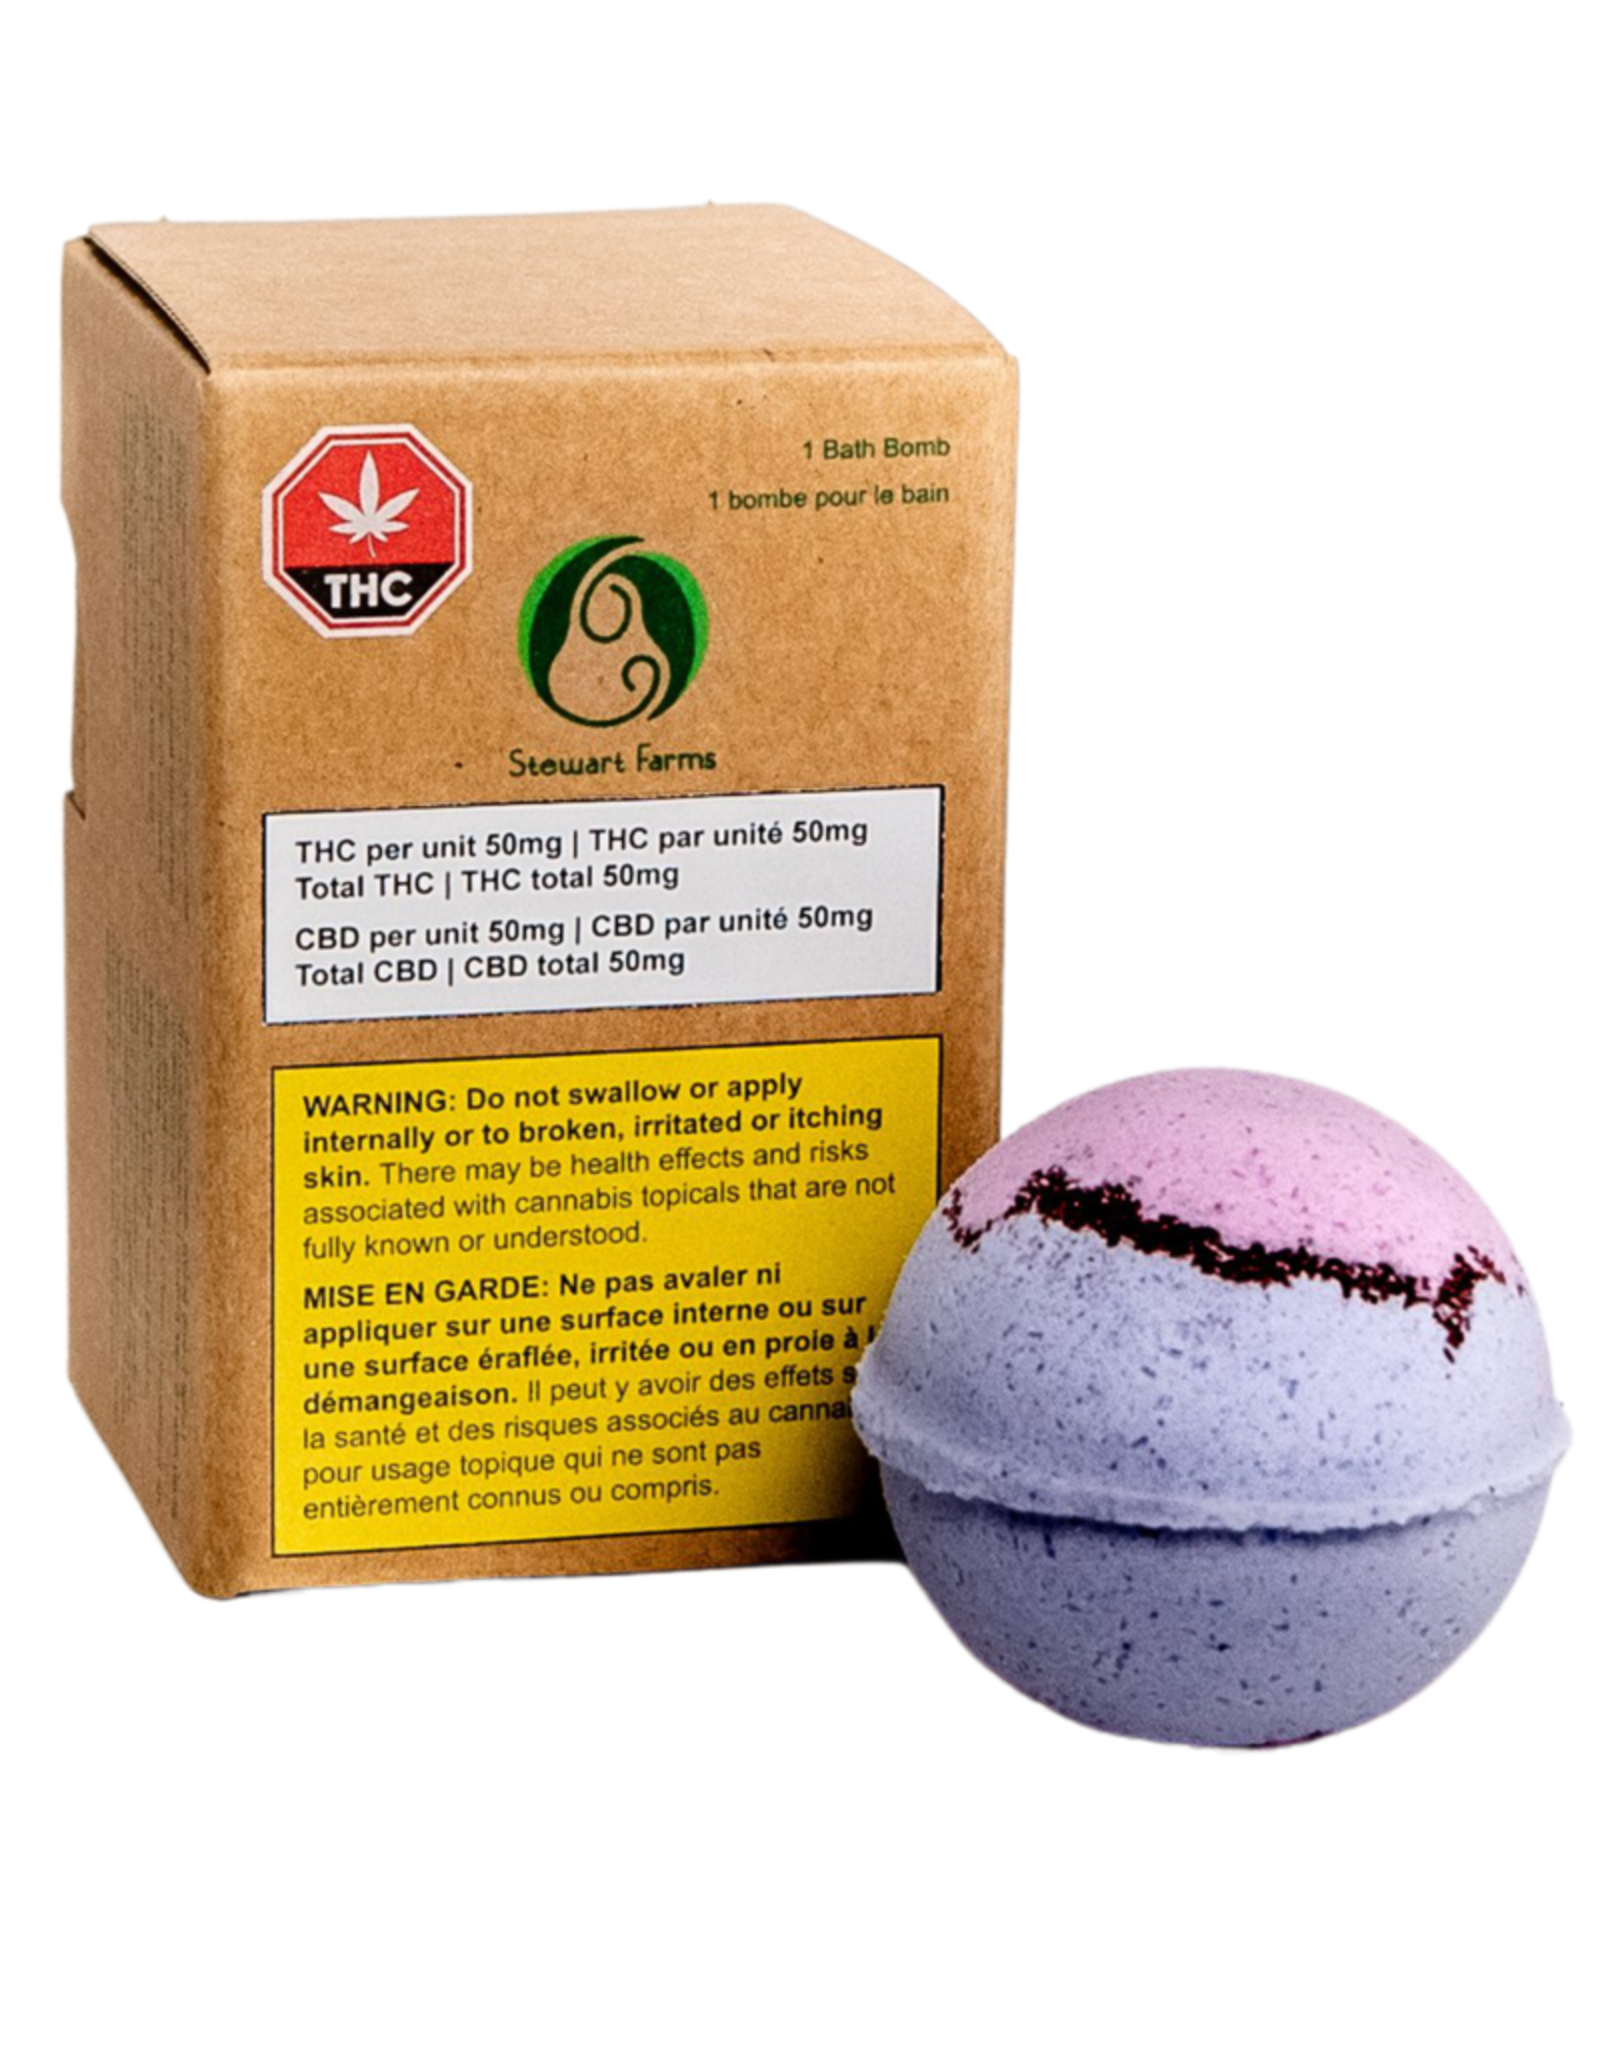 Stewart Farm Stewart Farms - Bubba Kush Bath Bomb